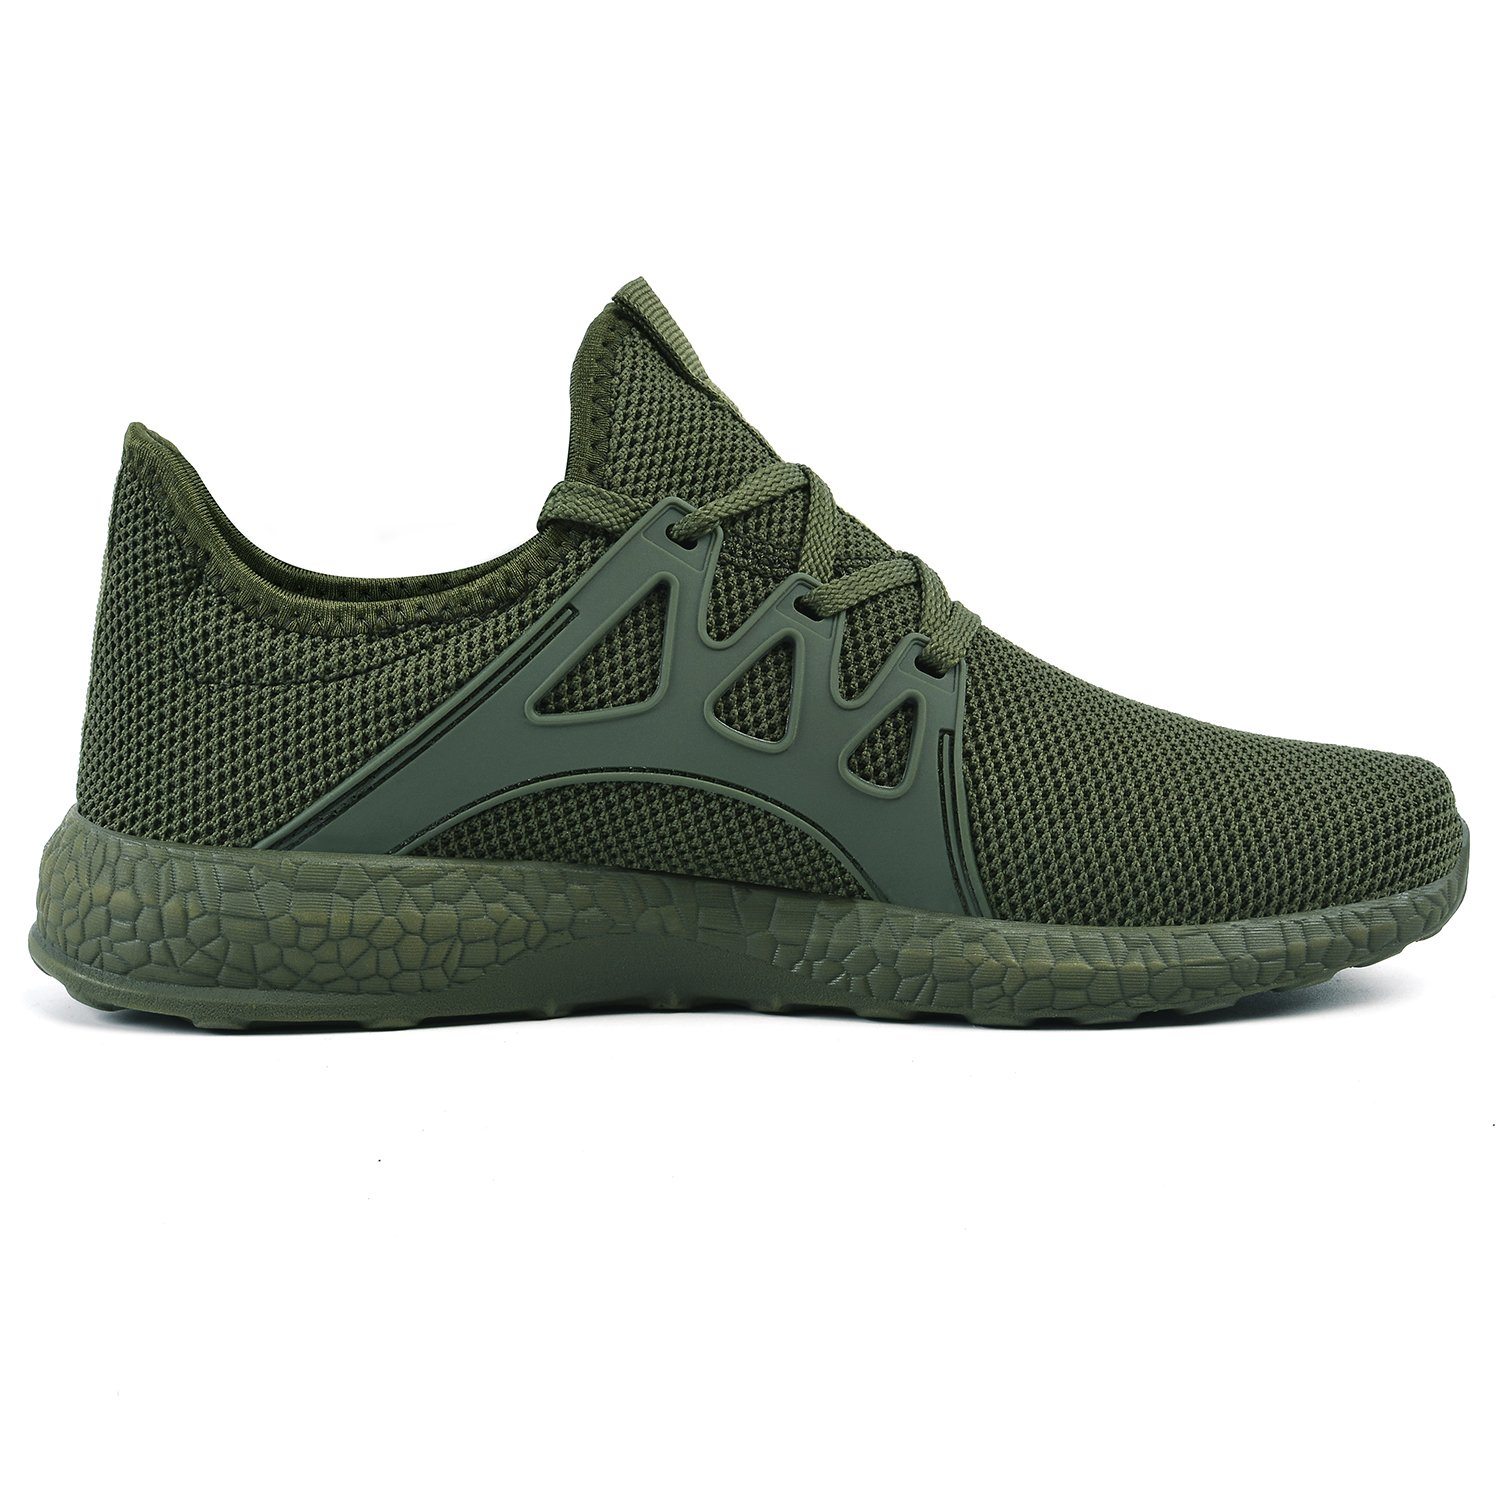 Feetmat Womens Sneakers Ultra Lightweight Breathable Mesh Walking Gym Tennis Athletic Running Shoes B07C6M3D7V 9.5 M US|Green